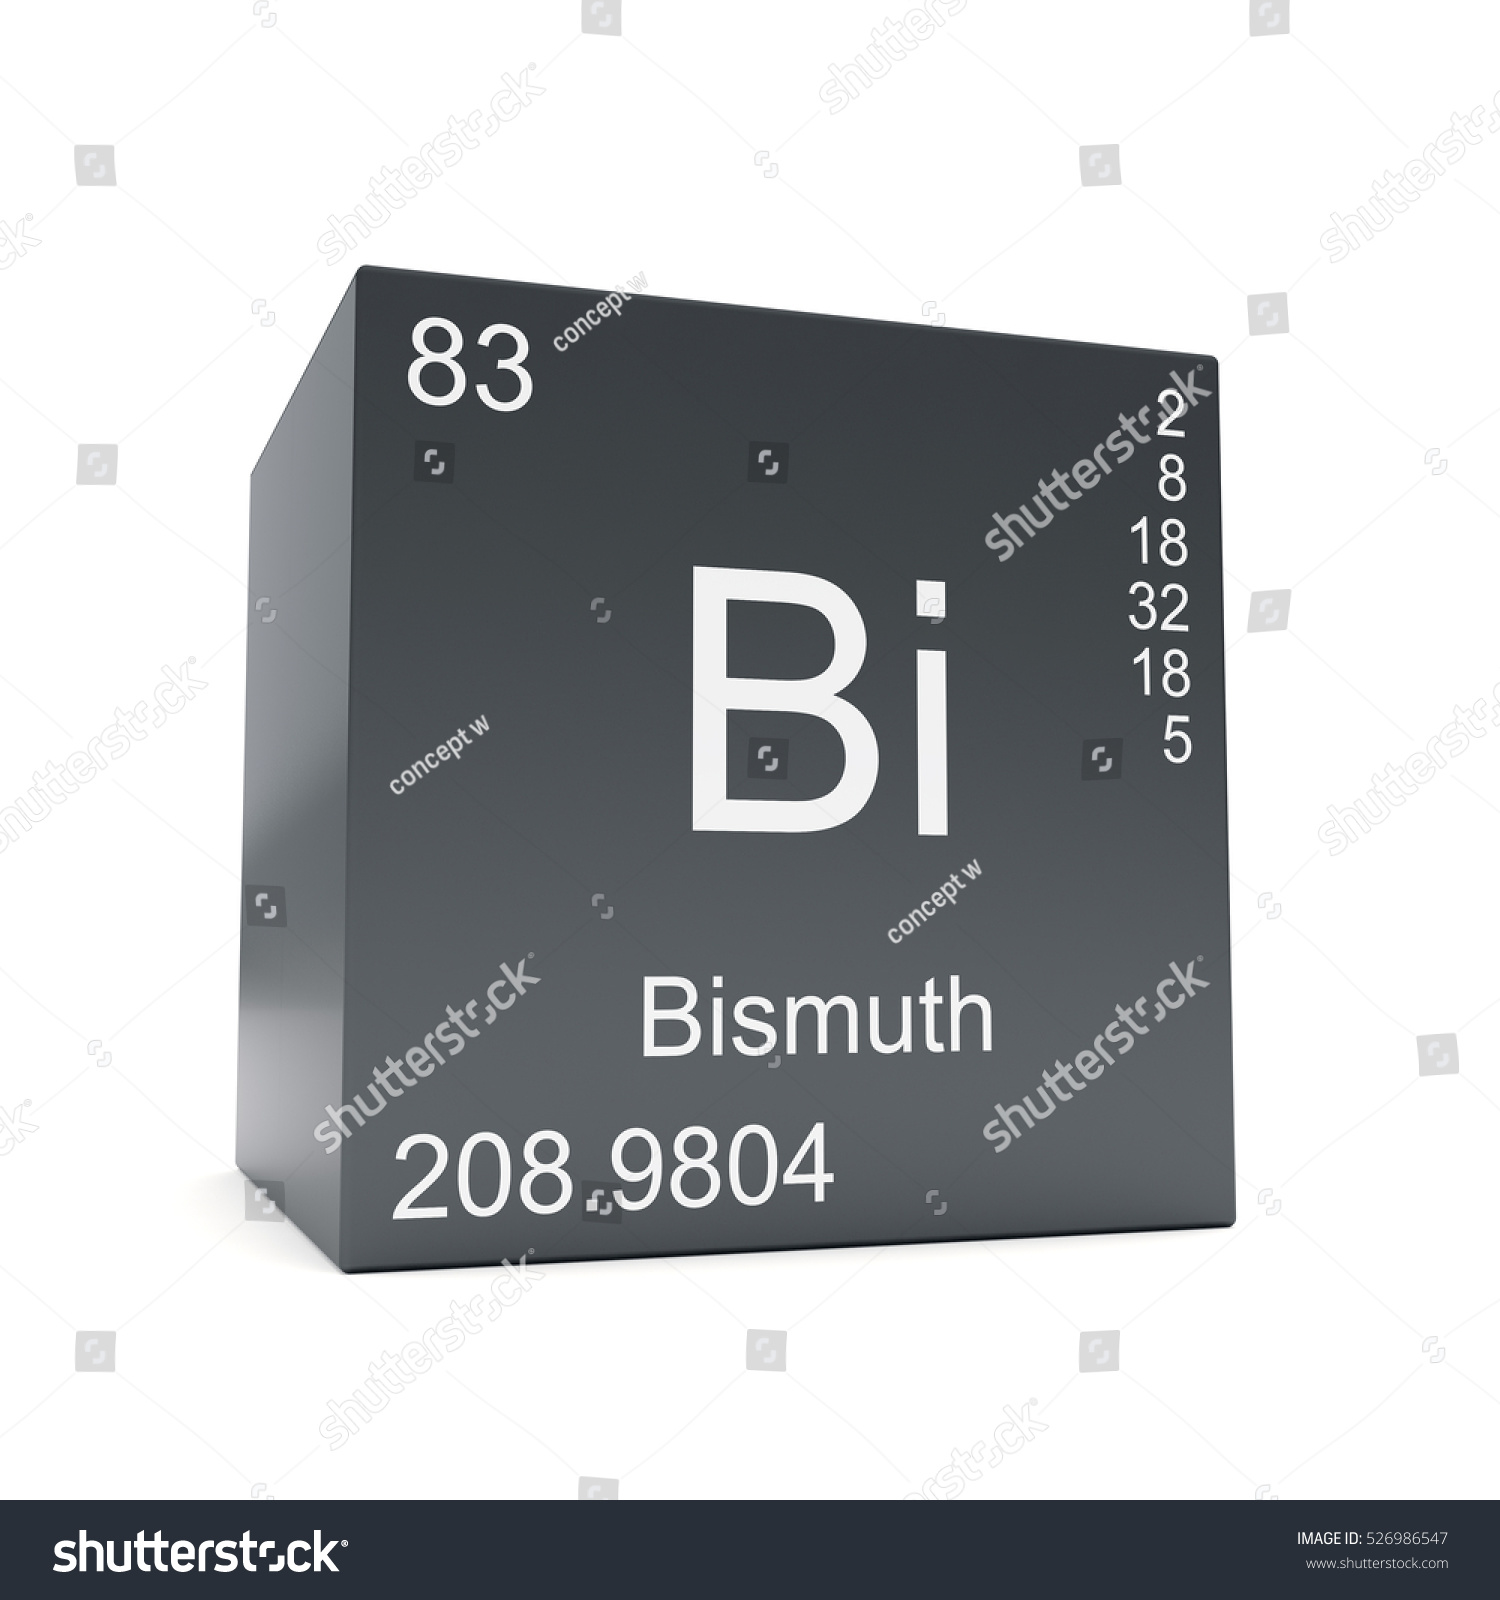 Bismuth chemical element symbol periodic table stock illustration bismuth chemical element symbol from the periodic table displayed on black cube 3d render buycottarizona